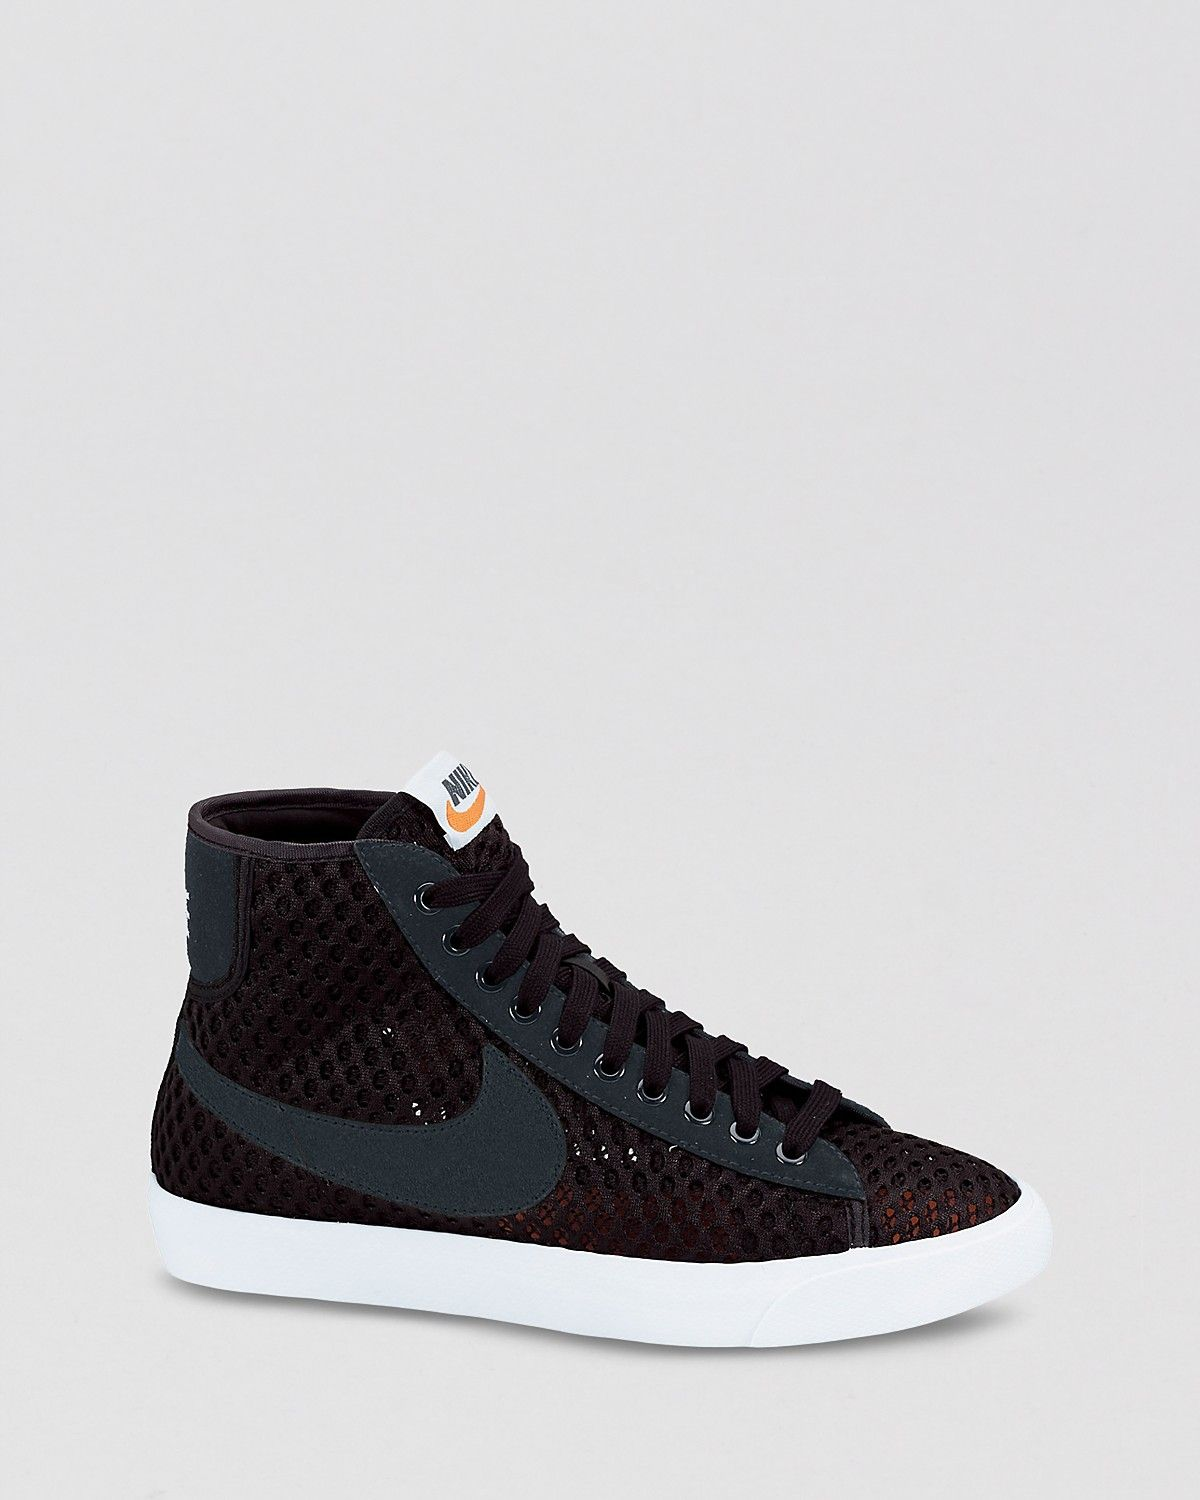 nike blazer mid high top trainers ladies